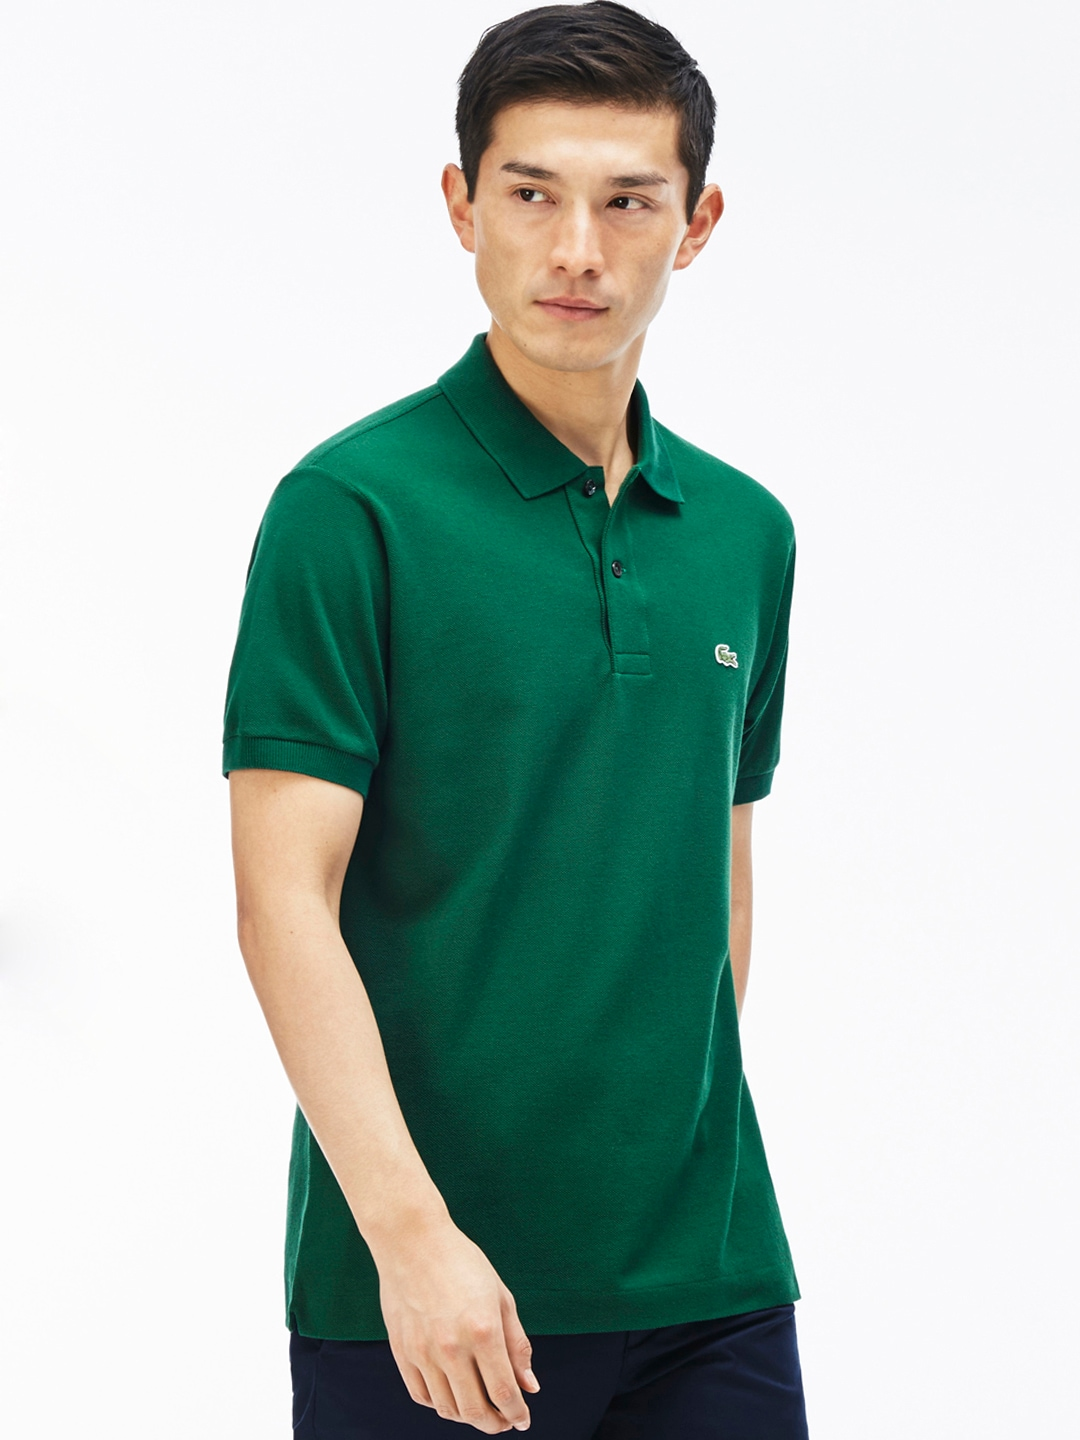 509d31a328292 Lacoste - Buy Clothing   Accessories from Lacoste Store